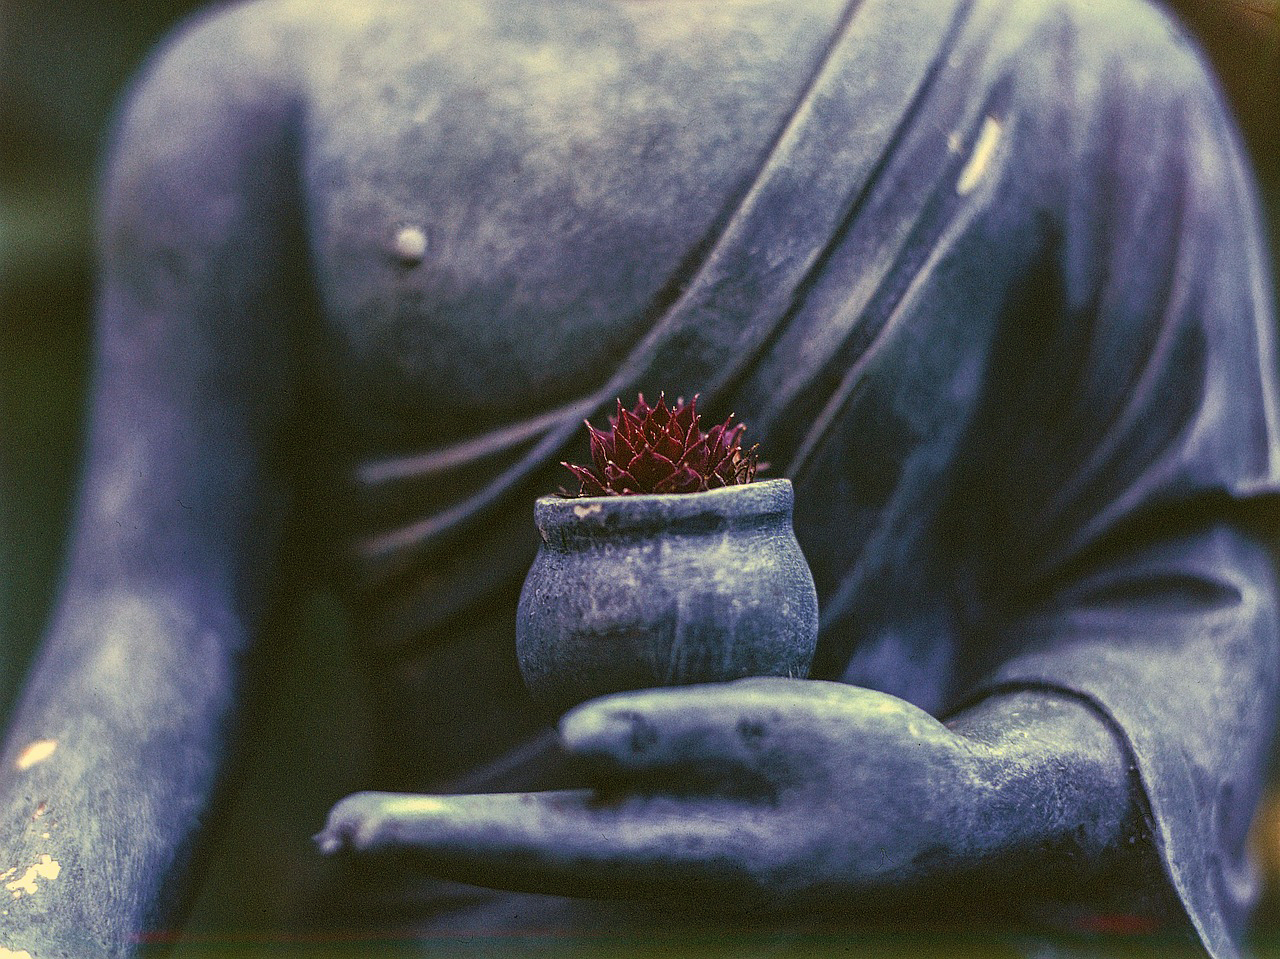 Online B-12: Buddhism and the 12 Steps of Recovery, May 16